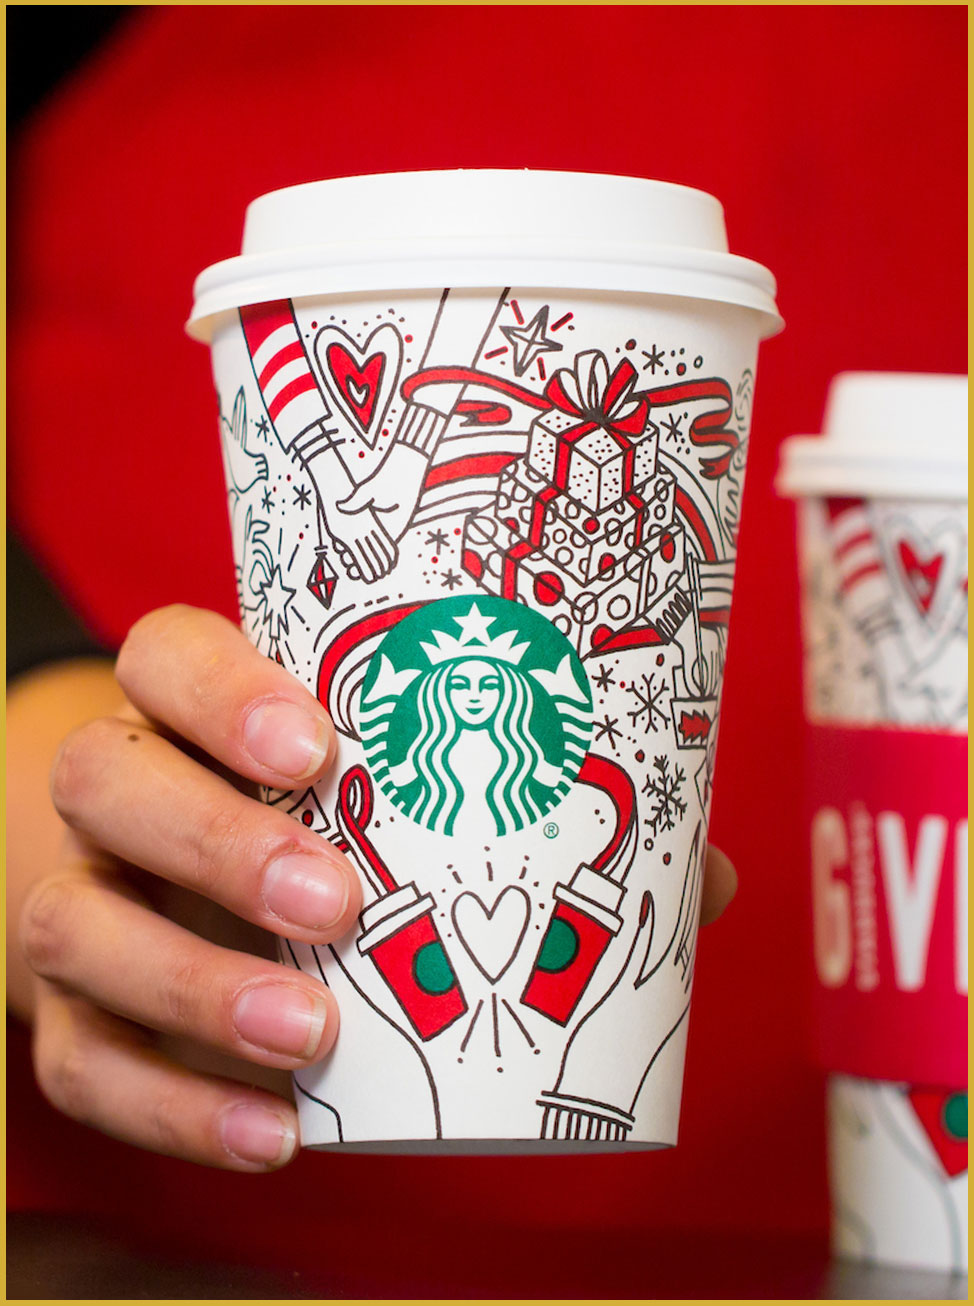 Starbucks holiday cup for 2017